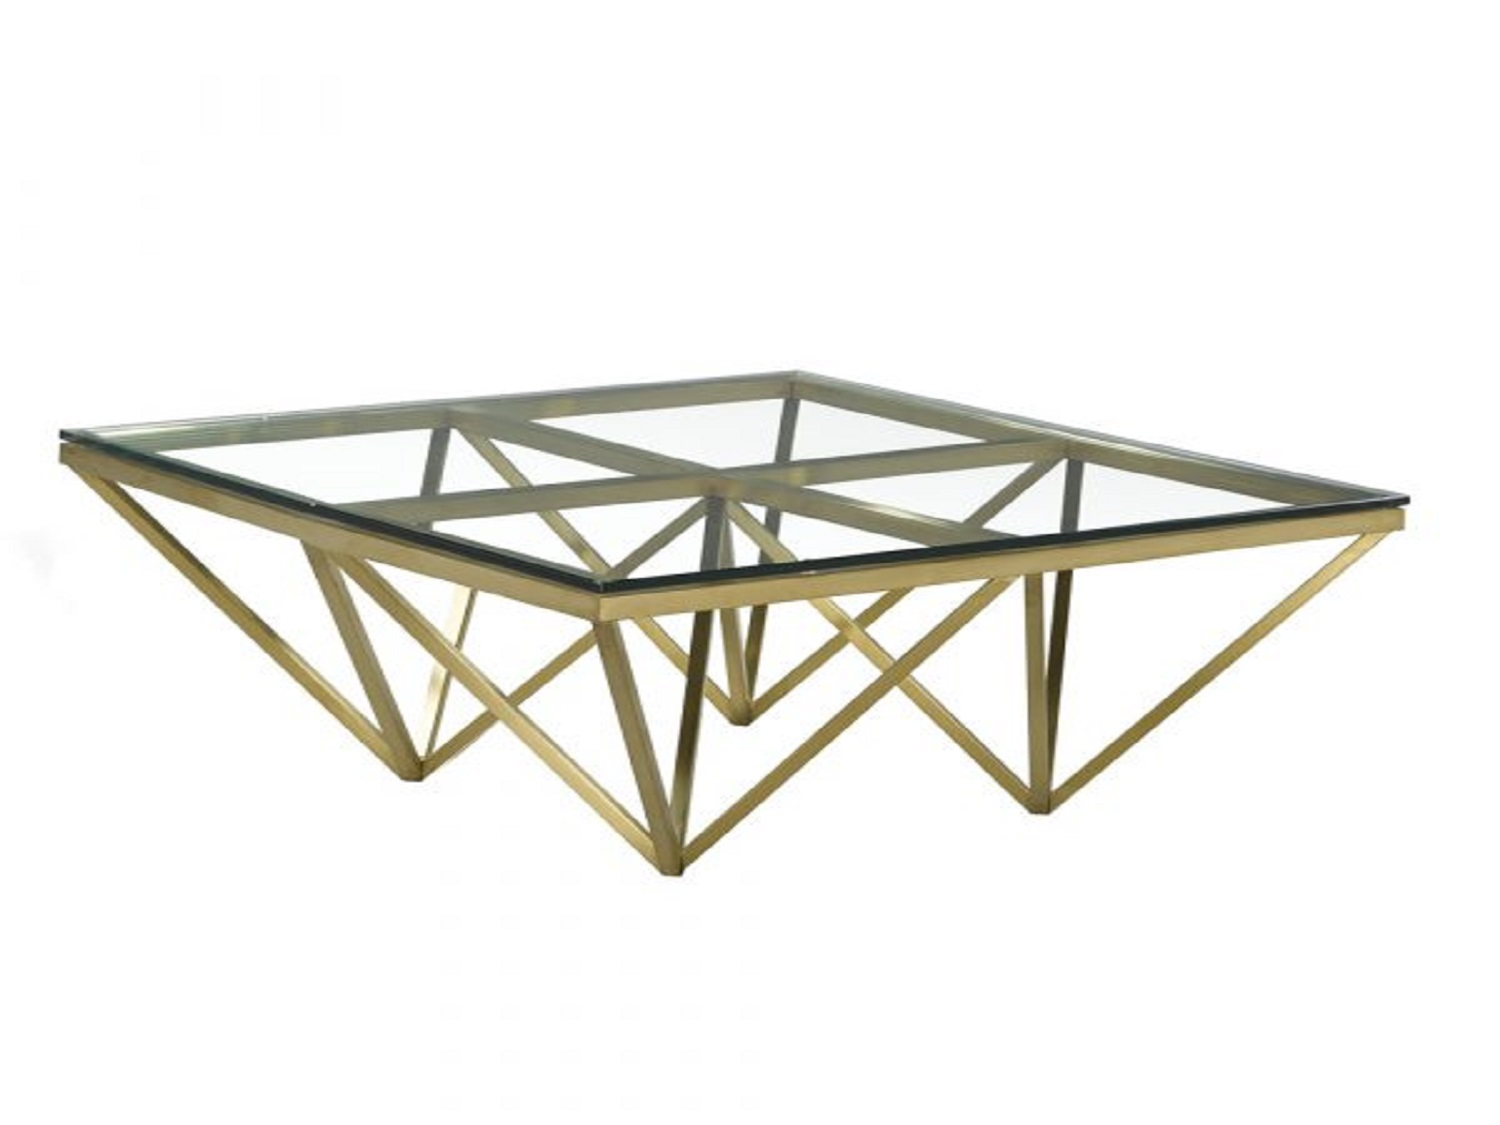 Luxor Gold Coffee Table, 100210, Coffee Table by Midha Furniture to Brampton, Mississauga, Etobicoke, Toronto, Scraborough, Caledon, Oakville, Markham, Ajax, Pickering, Oshawa, Richmondhill, Kitchener, Hamilton and GTA area